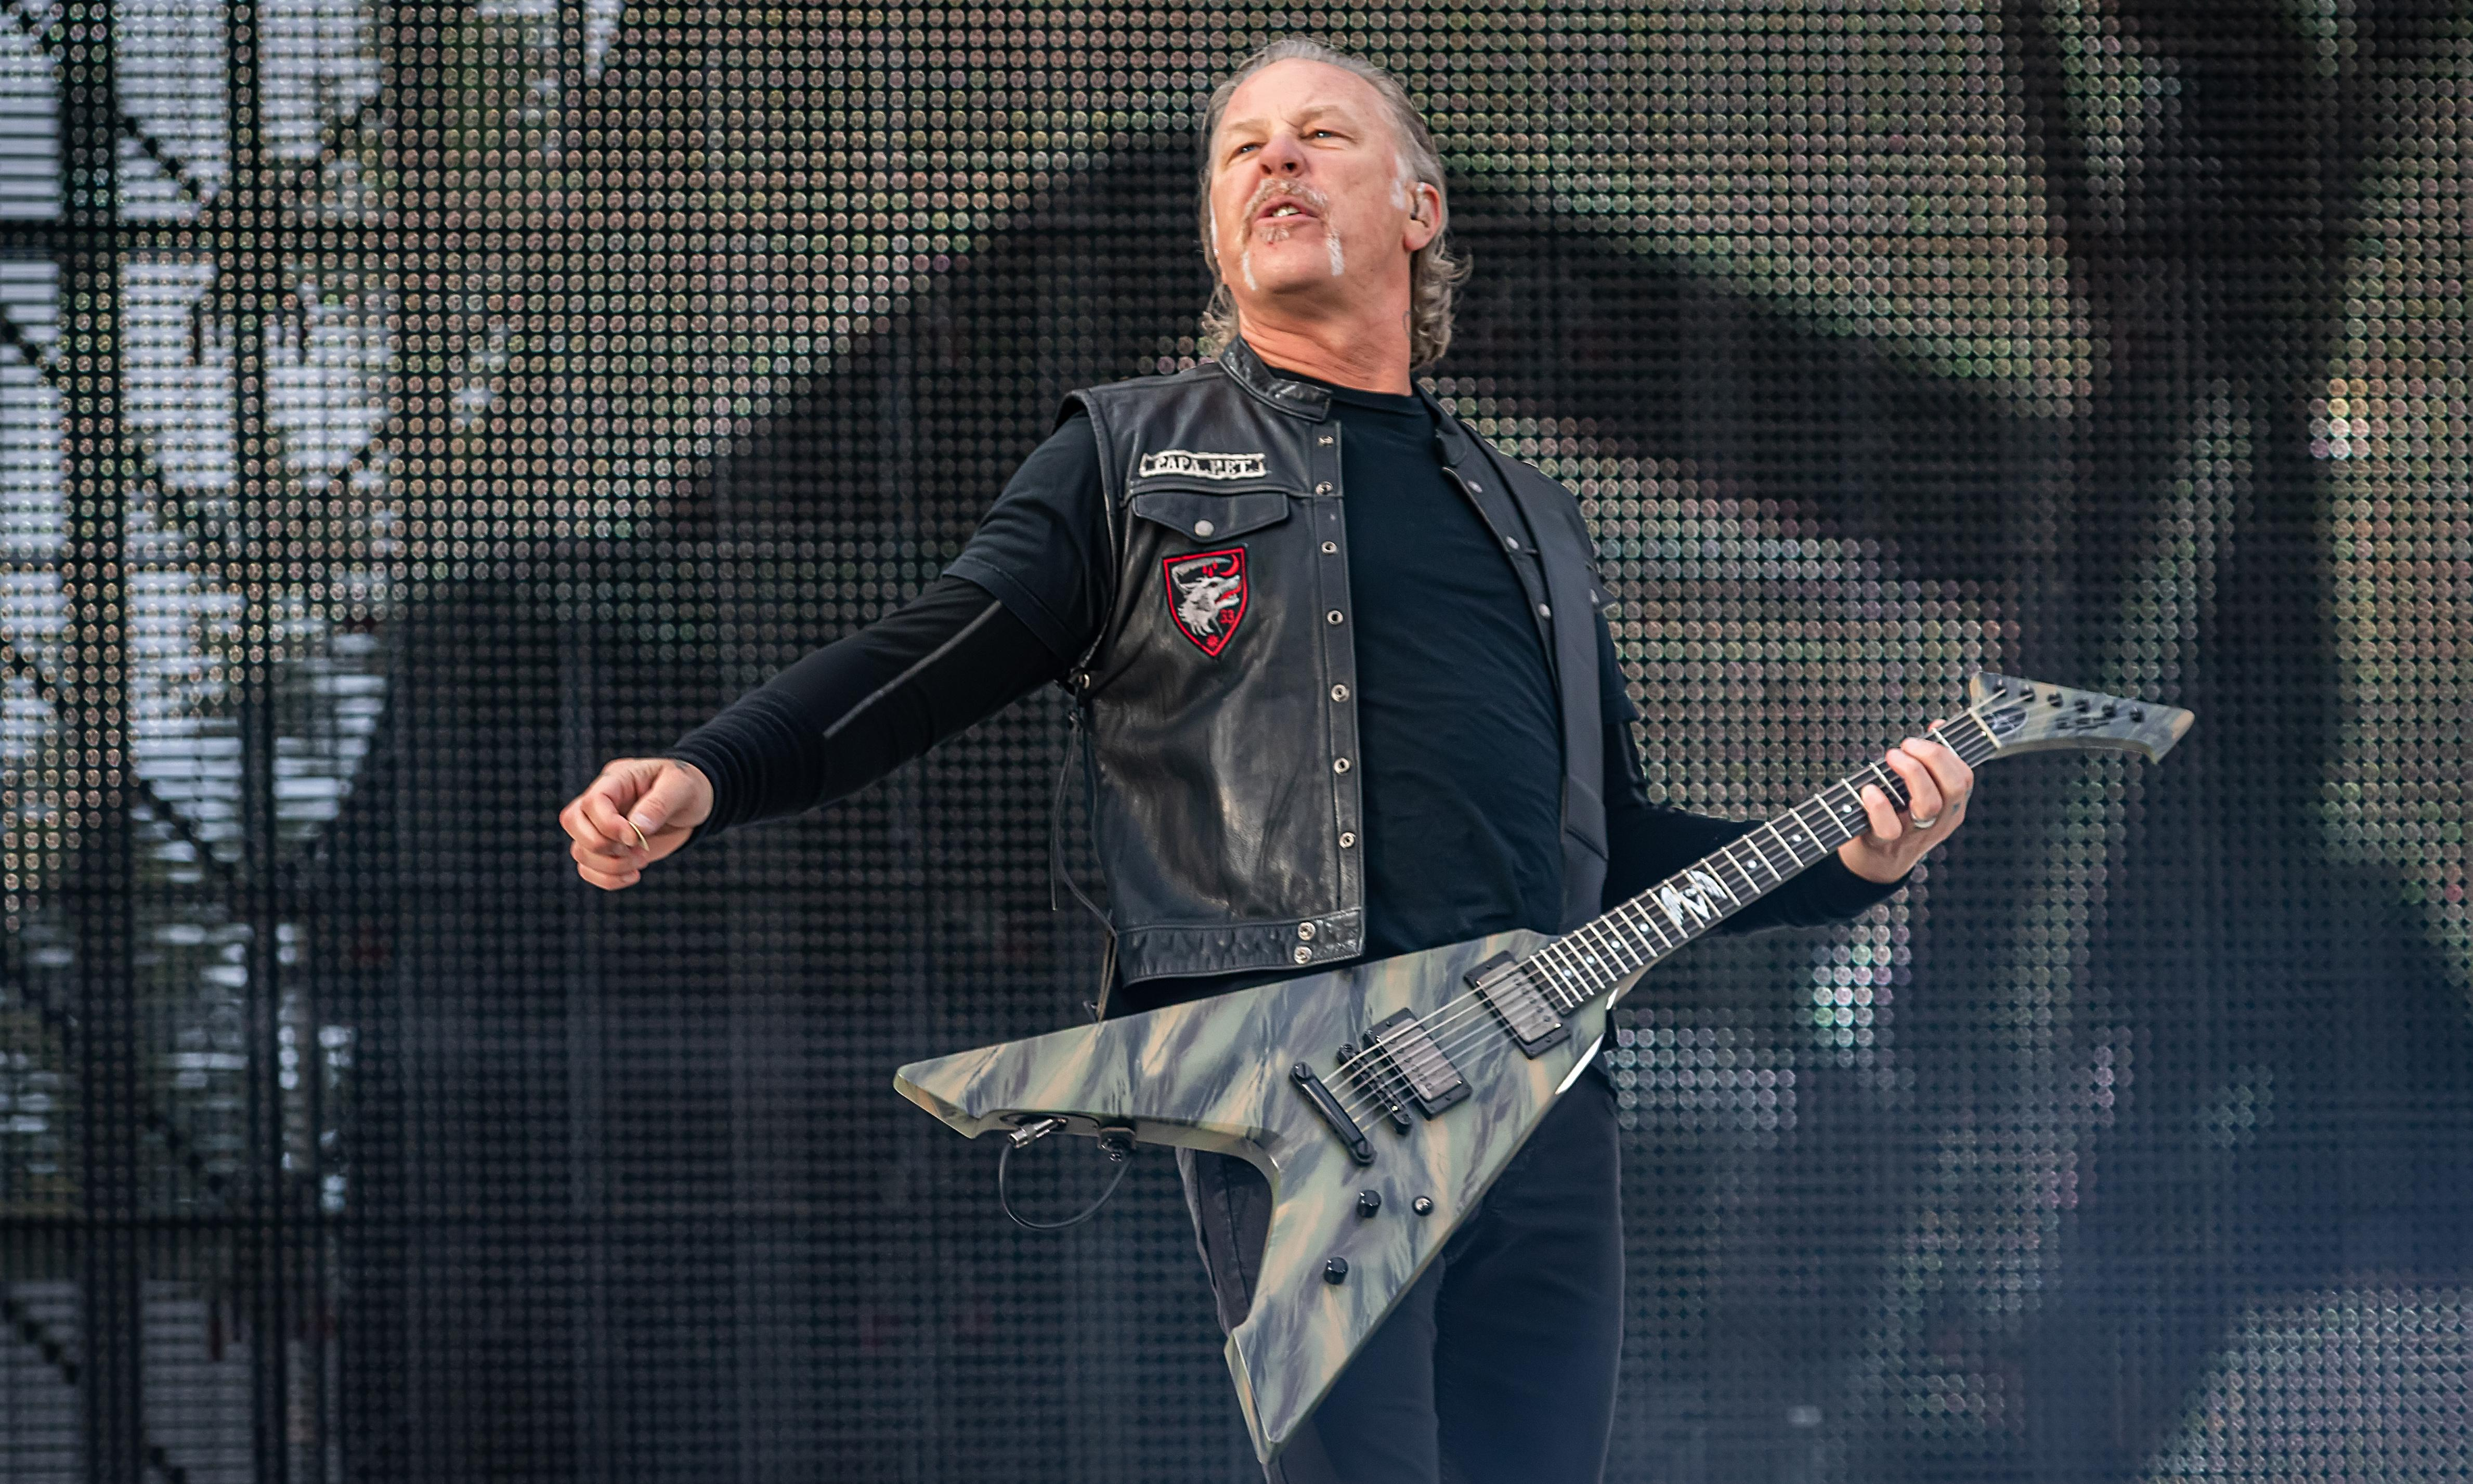 Live Nation and Metallica placed tickets on resale sites